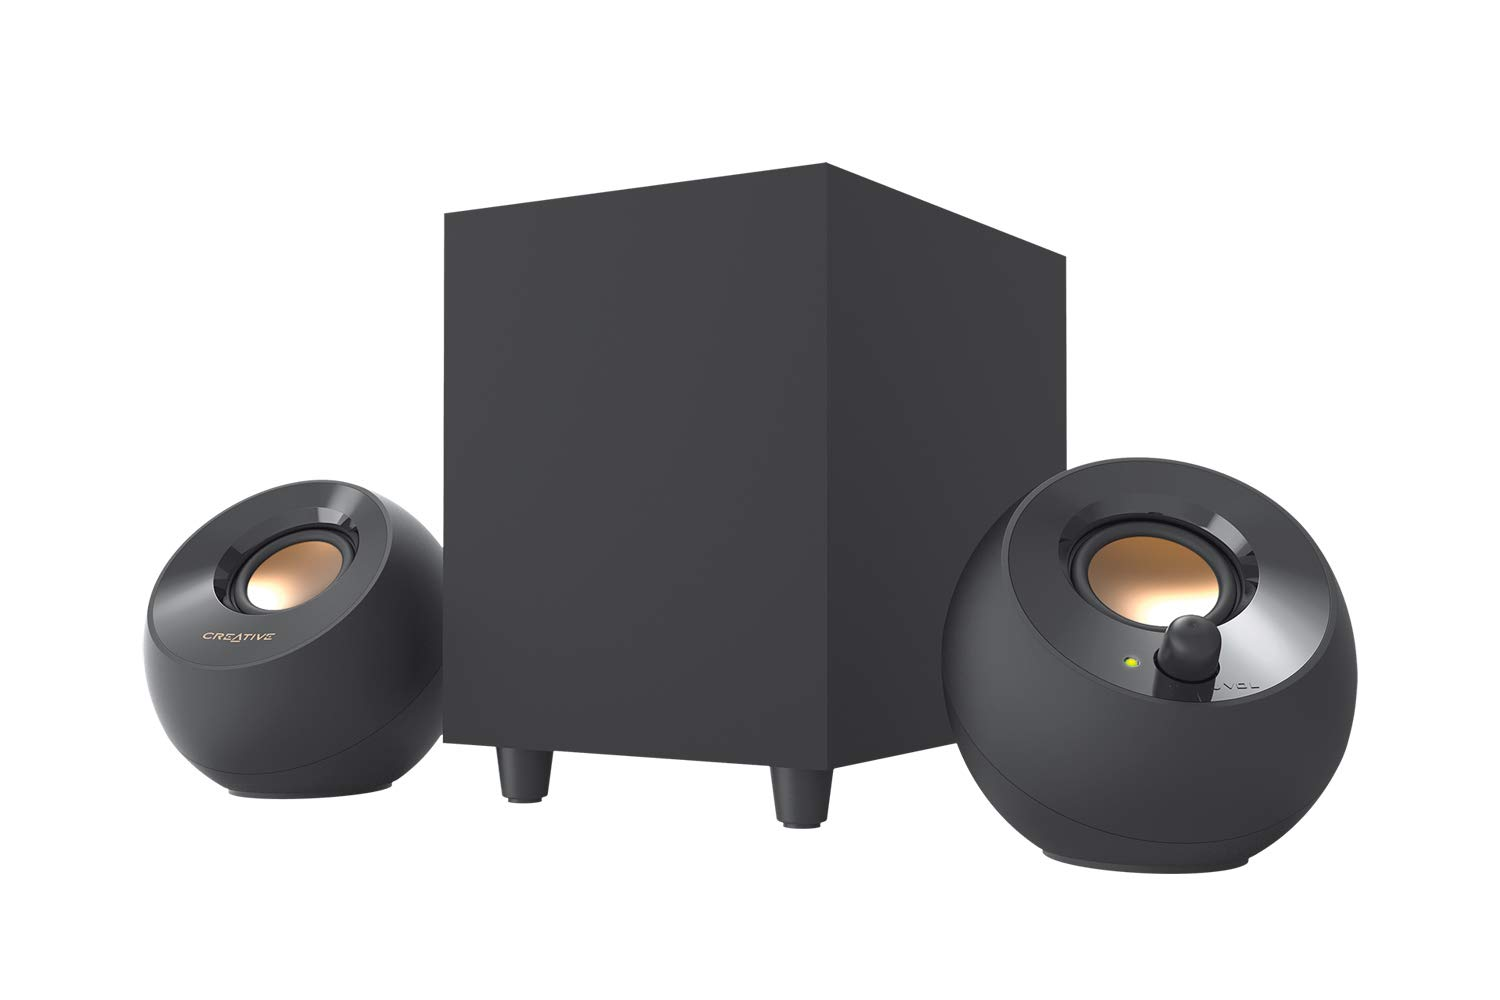 Parlantes PC Creative Pebble 2.1 + Subwoofer USB Powered